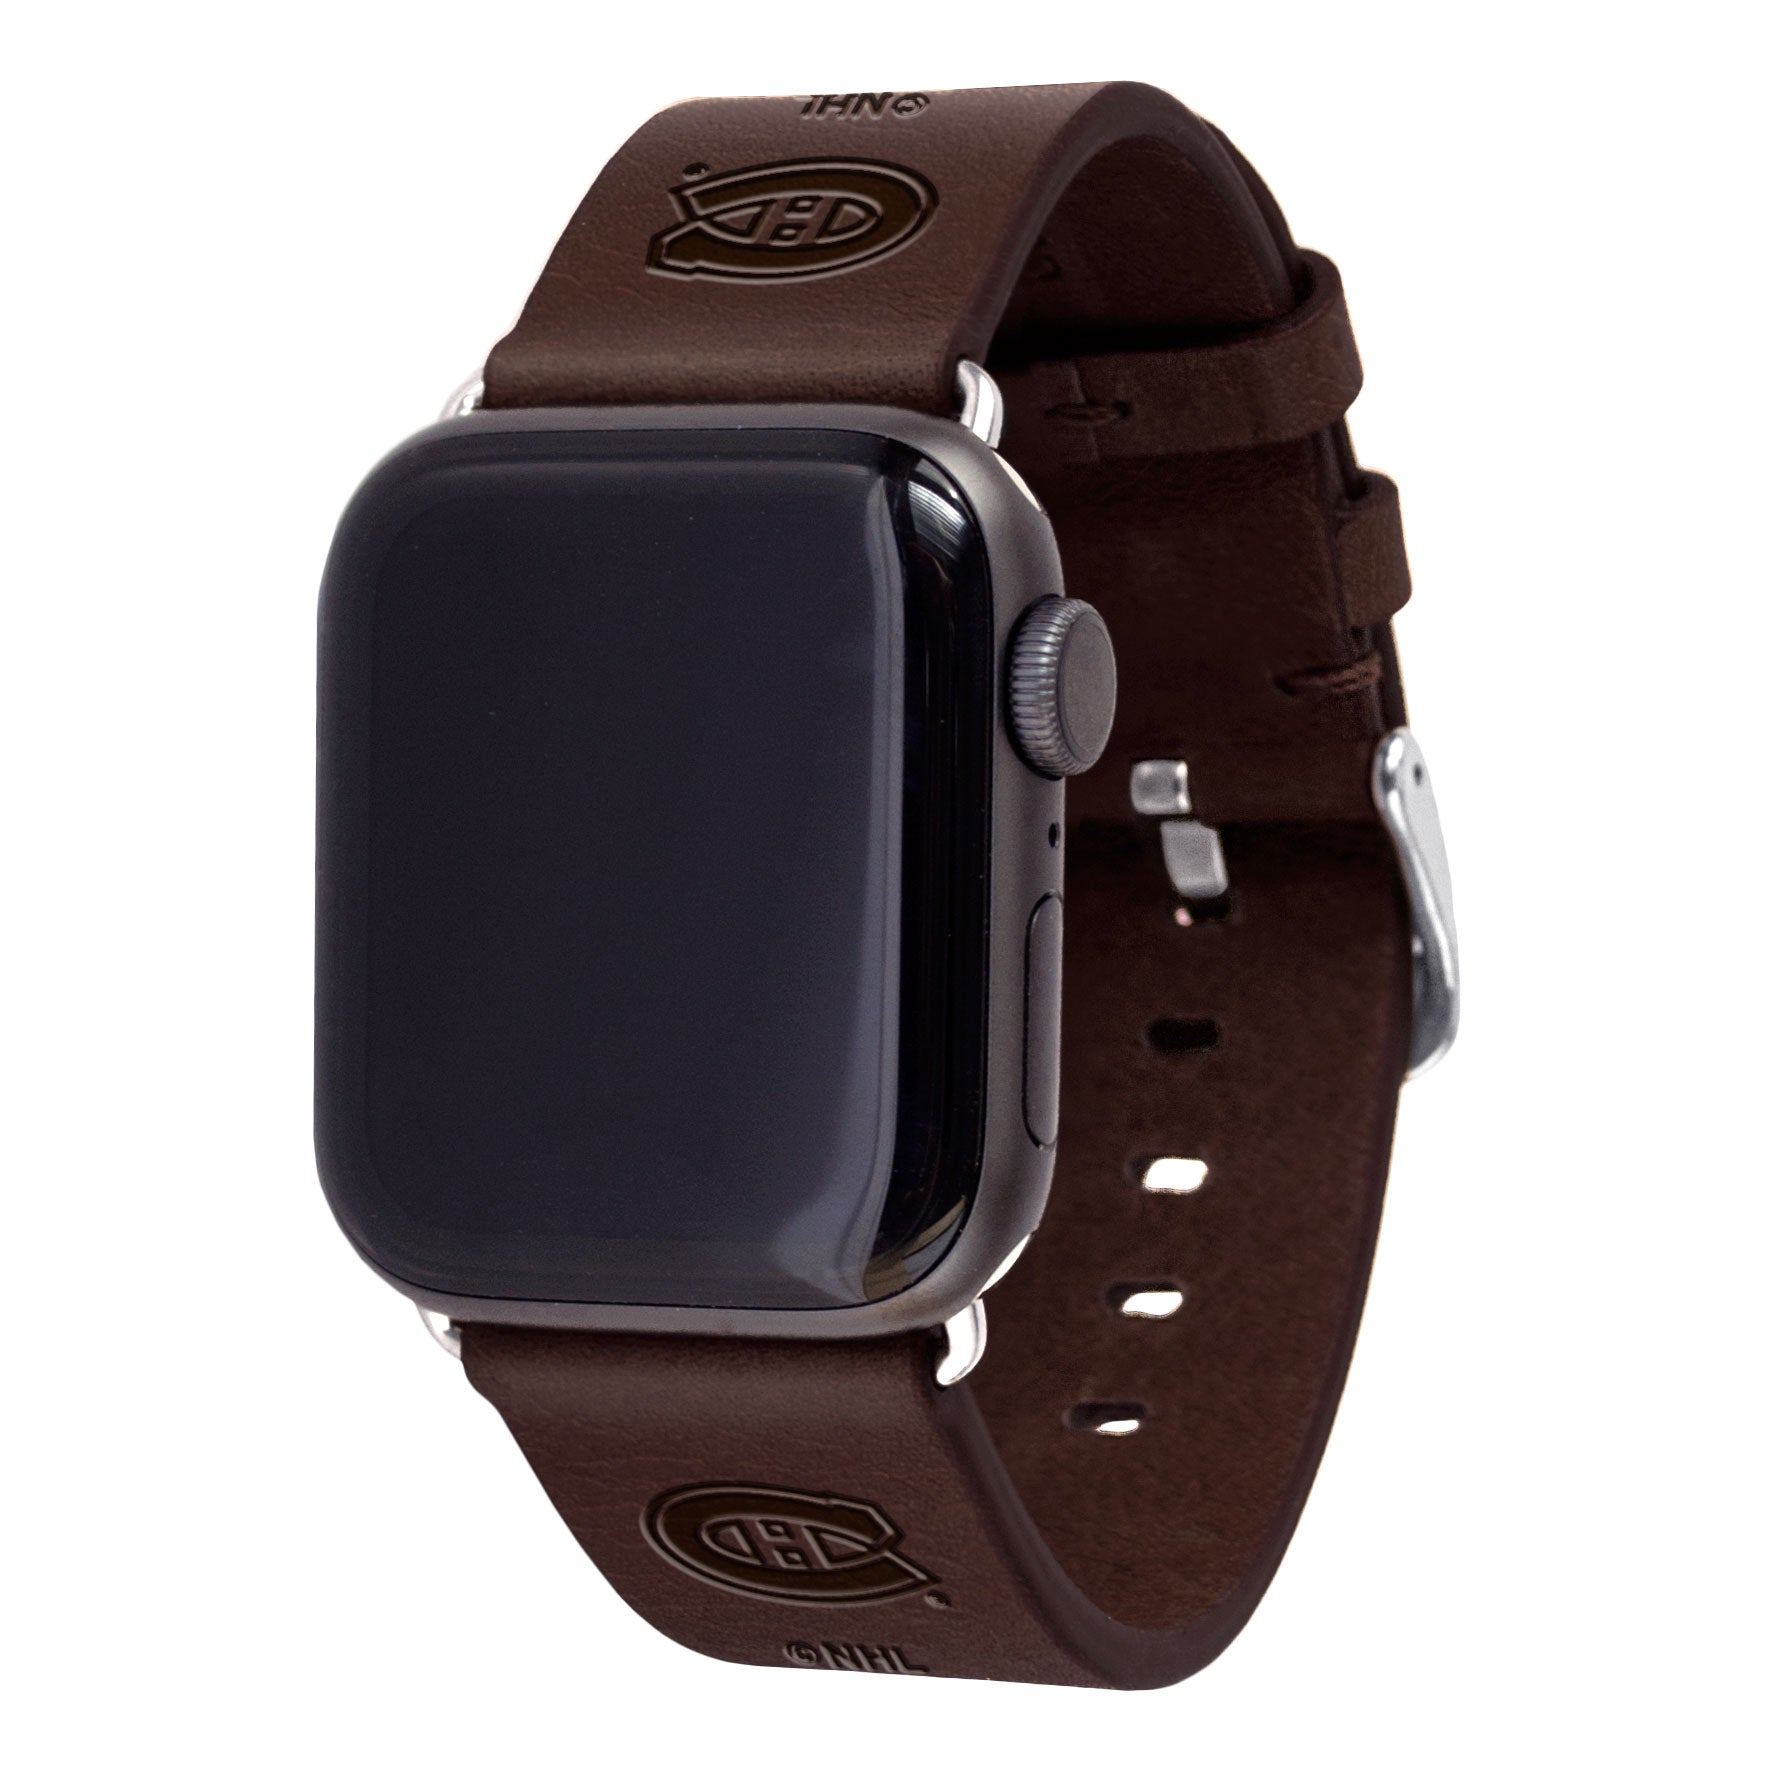 Montreal Canadiens Leather Apple Watch Band - AffinityBands